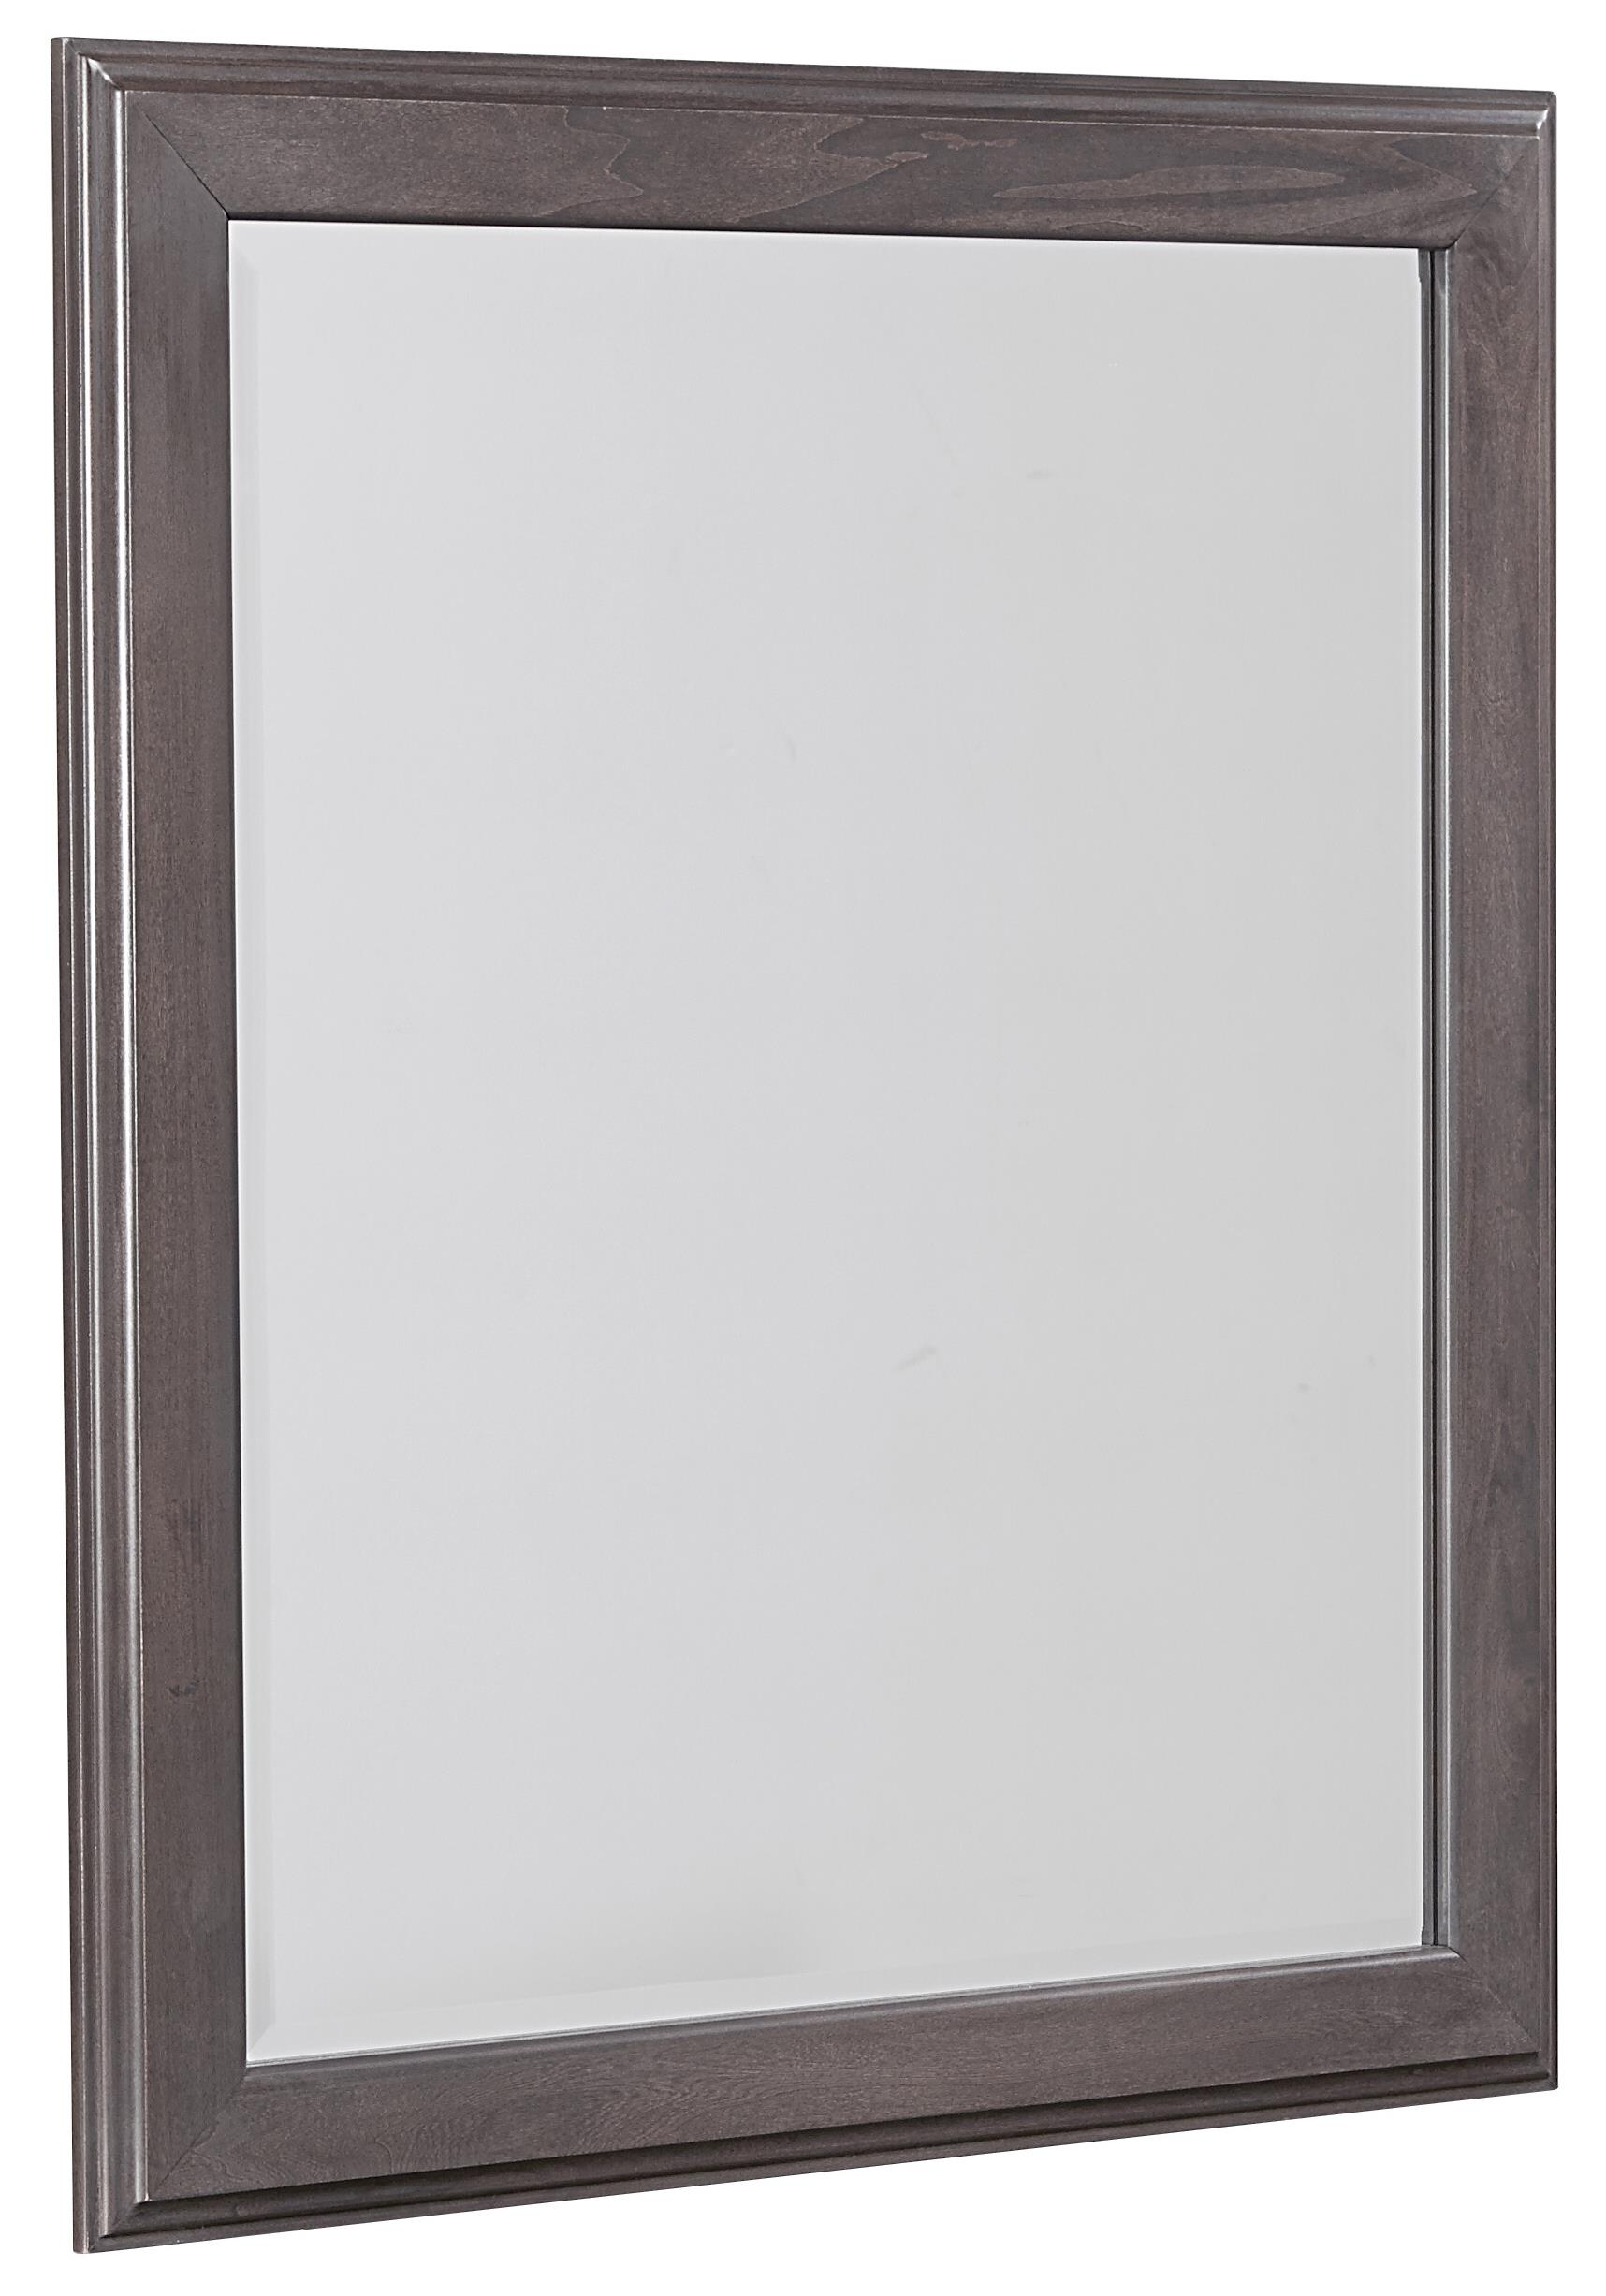 Vaughan Bassett Commentary Youth Landscape Mirror - Item Number: 394-442